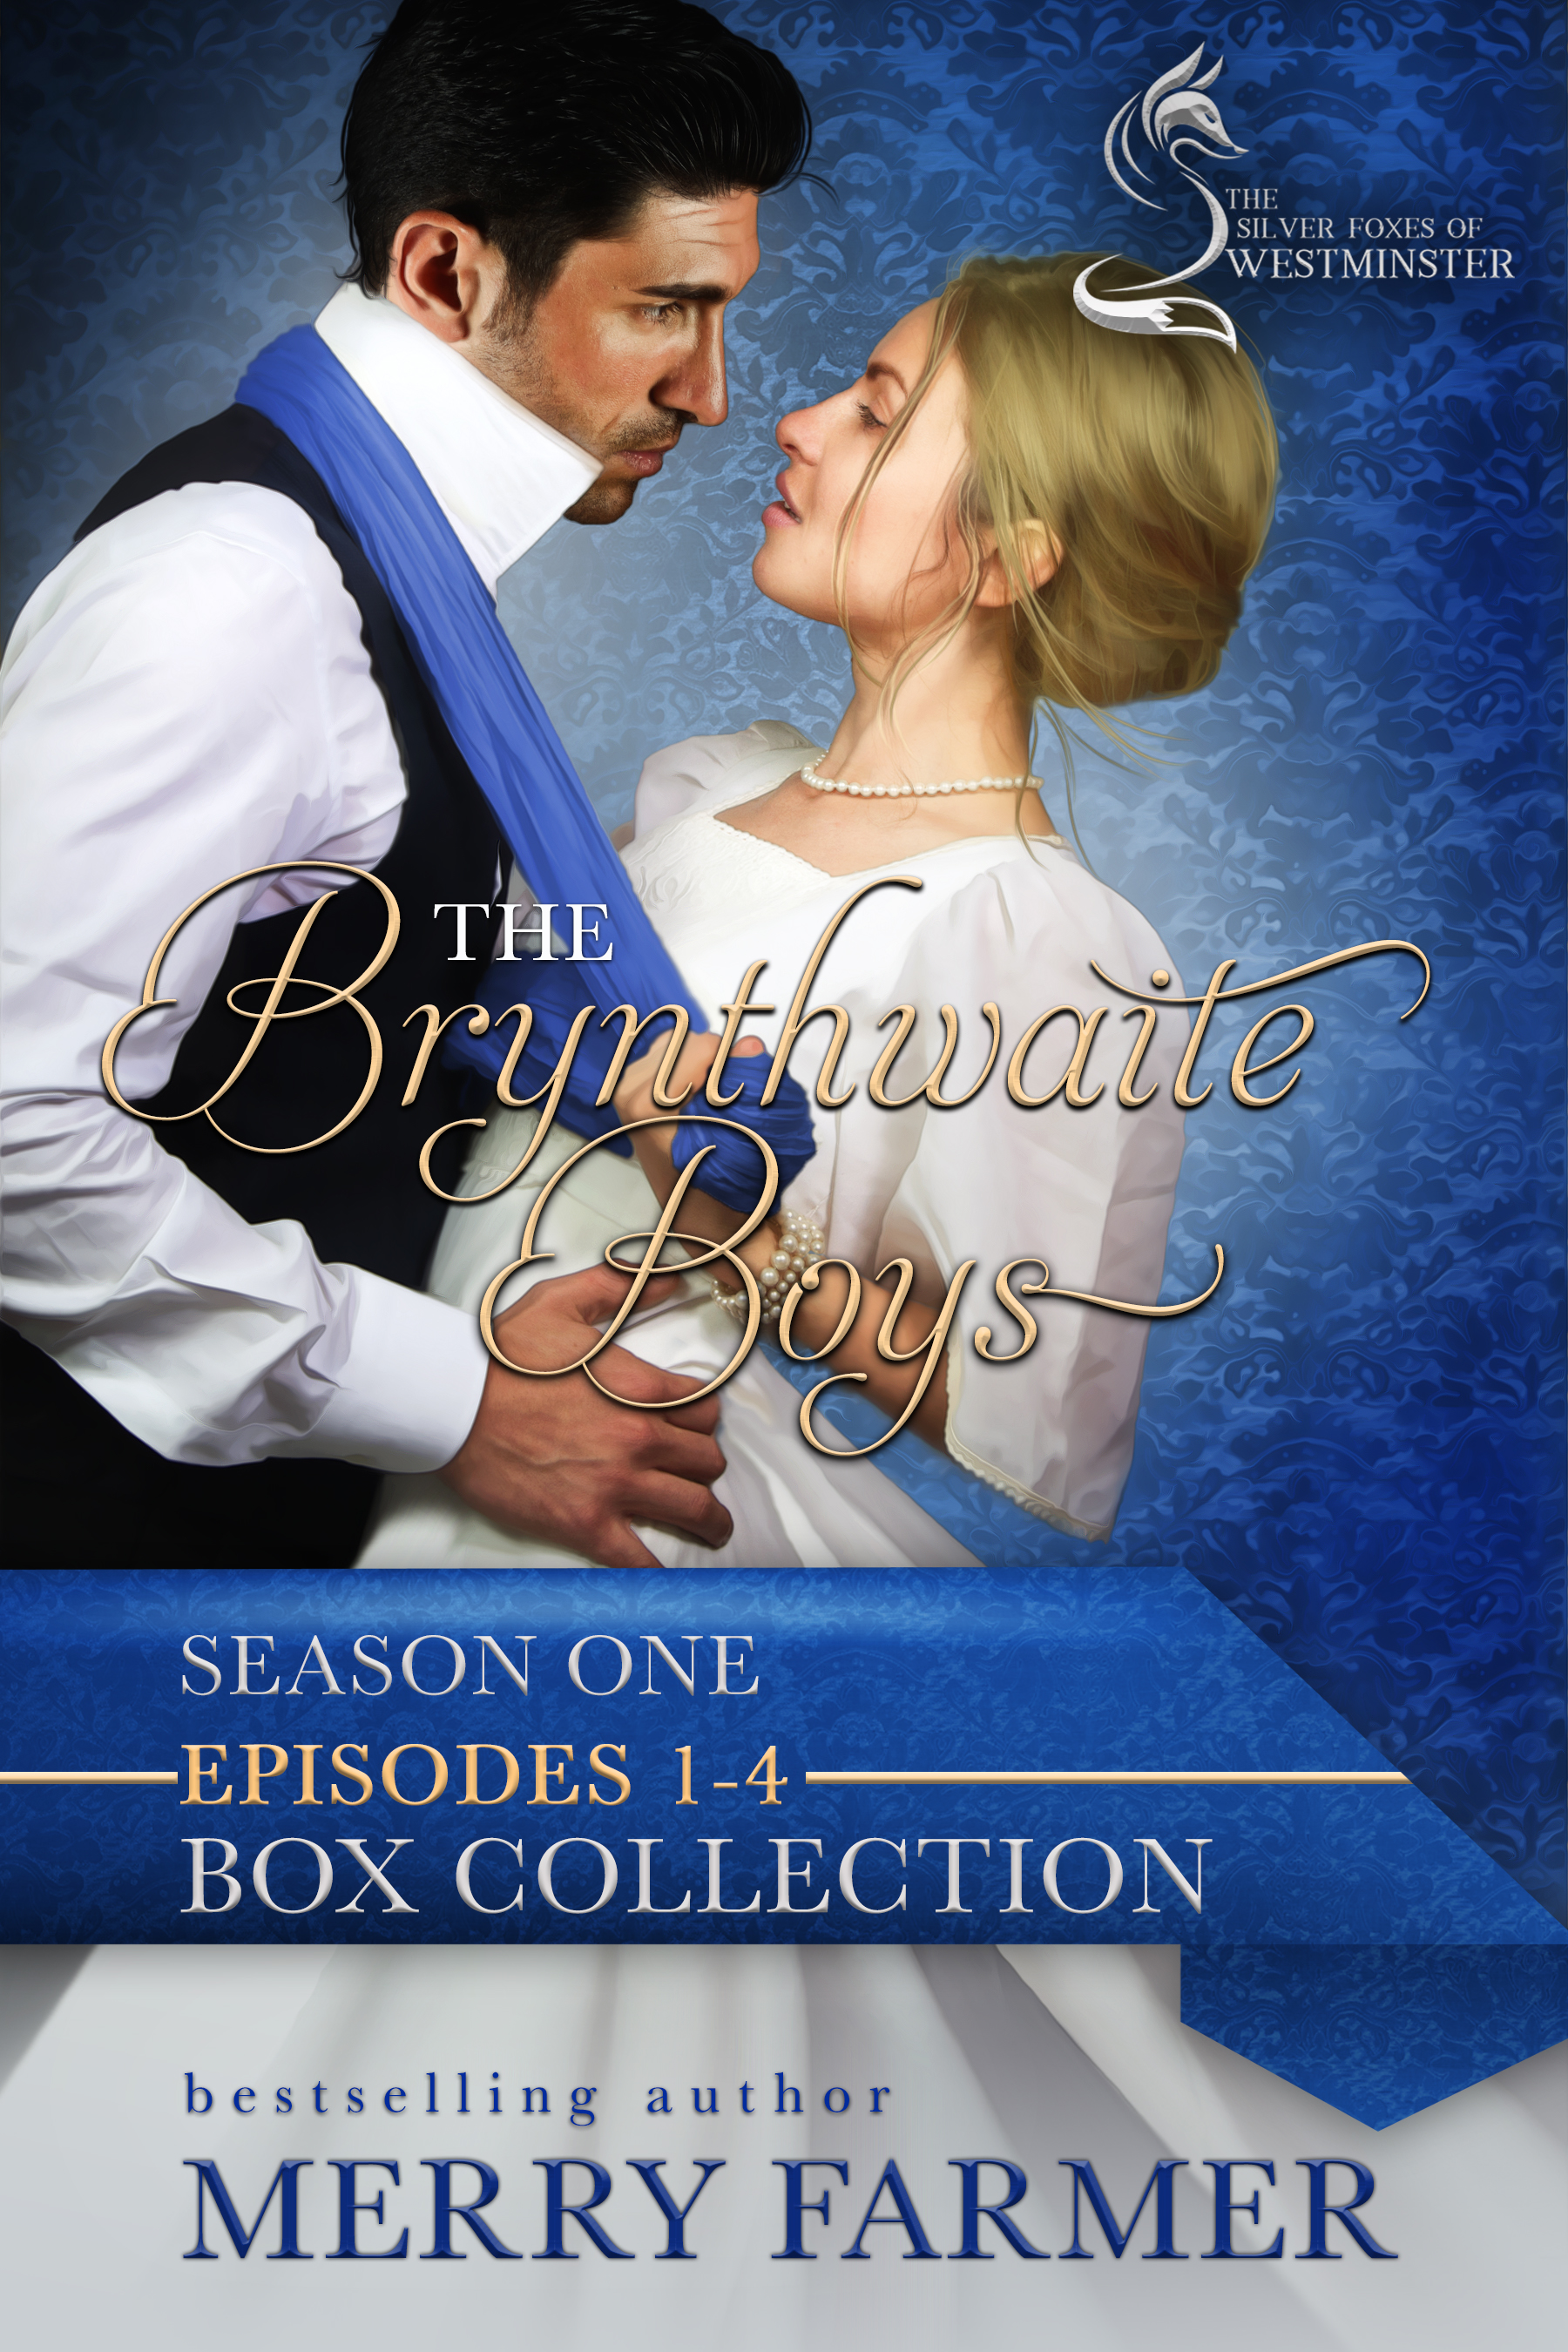 The Brynthwaite BoysSeason One: Episodes 1-4 - Episode One – A Promising Start:After leaving Brynthwaite 15 years earlier, Jason Throckmorton has clawed his way to the top of the business world, making a name for himself as a hotelier. Now he is building a luxury hotel in Brynthwaite to draw wealthy tourists to the Lake District. But his real designs are on Lady Elizabeth, the woman he has obsessed about since he was a boy. Jason has a dark secret, though. But help comes in the form of the clever and insightful Flossie Stowe, a maid Jason hires to work in his hotel—a woman who harbors secrets of her own.Dr. Marshall Pycroft left Brynthwaite to become a doctor, making a name for himself in London. When Brynthwaite Municipal Orphanage was converted into Brynthwaite Hospital, he returned home to head it, taking his London wife and three daughters with him. Marshall has his hands full between the understaffed, under-funded hospital and his shrewish, overbearing wife. Until Dr. Alexandra Dyson, a lady in her own right as well as a qualified doctor, ask to work with him. But Alexandra's mother has other plans for her disobedient doctor—plans that could land the hospital in hot water.Lawrence Smith never truly left Brynthwaite. As the local blacksmith, he plays a pivotal role in town, but as a well-known hedonist and reputed practitioner of old, pagan ways, he is both a subject of fascination and speculation. When a mysterious woman arrives on his doorstep with no memory, speculation runs rampant. How long will it take before her past catches up to her and puts Lawrence in danger?Episode Two – A Dangerous Corner:Still without her memory, Matty begins to adjust to Lawrence and the forge. Though haunted bits of her past assail her, she feels safe…but for how long?Alexandra has at last found a way to be happy in her new home in Brynthwaite. She and Marshall get along perfectly as colleagues at the hospital. But all that is threatened when Lady Charlotte suspects that Alex has